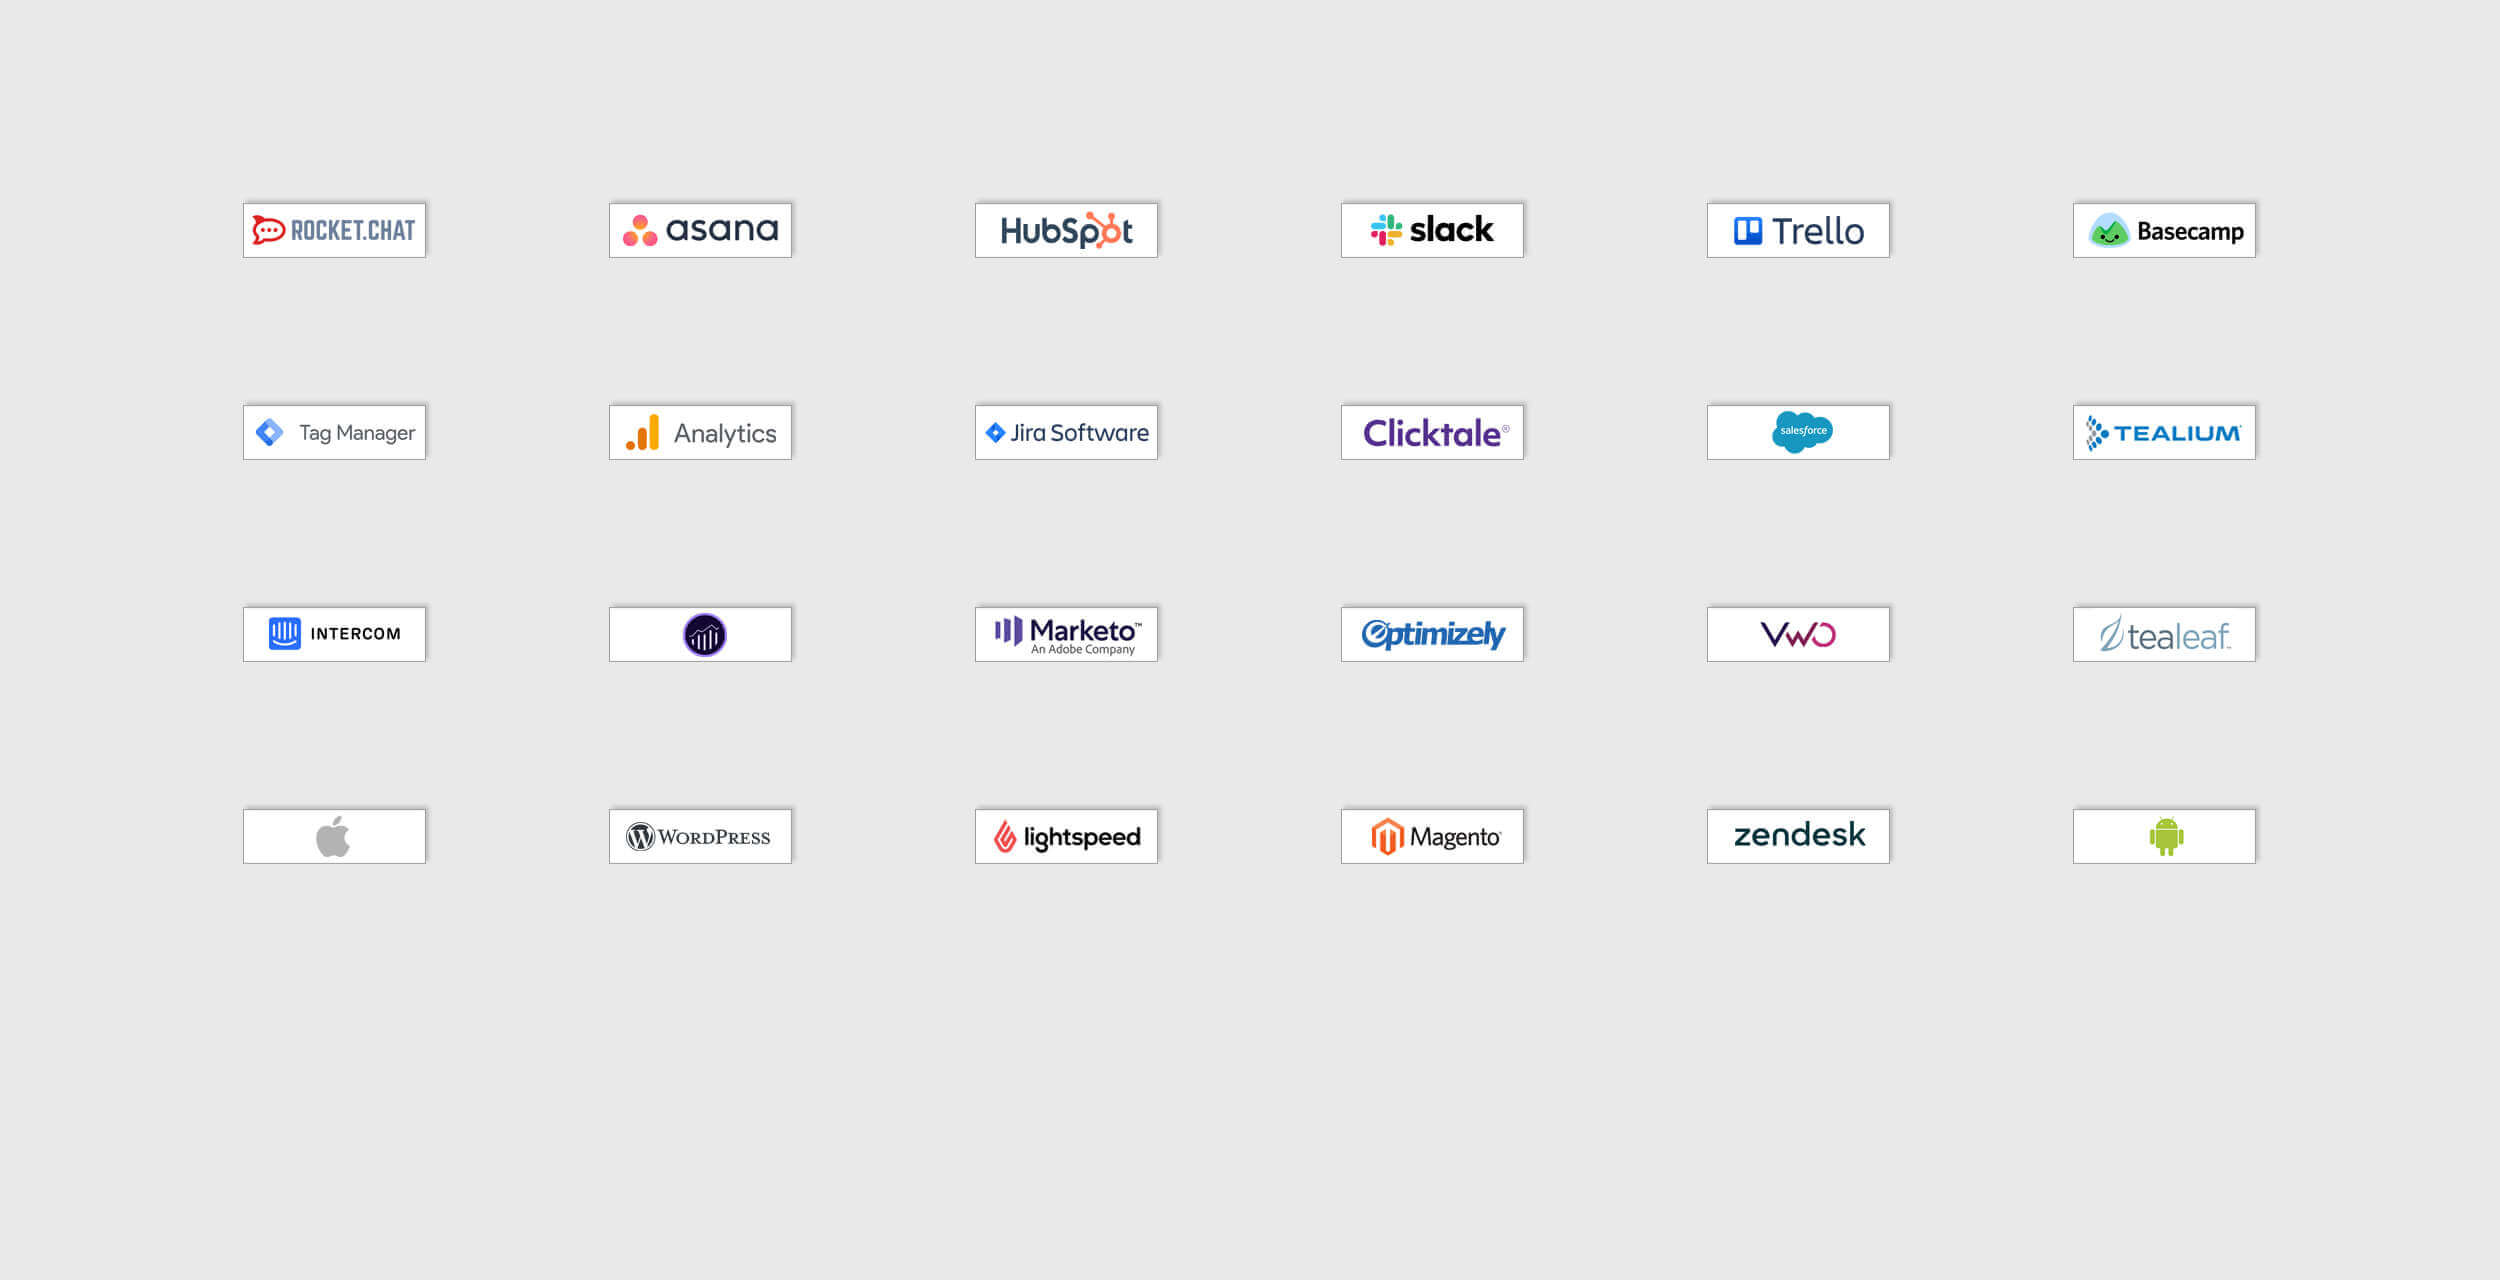 Integrations: Connect your favorite tools with Mopinion